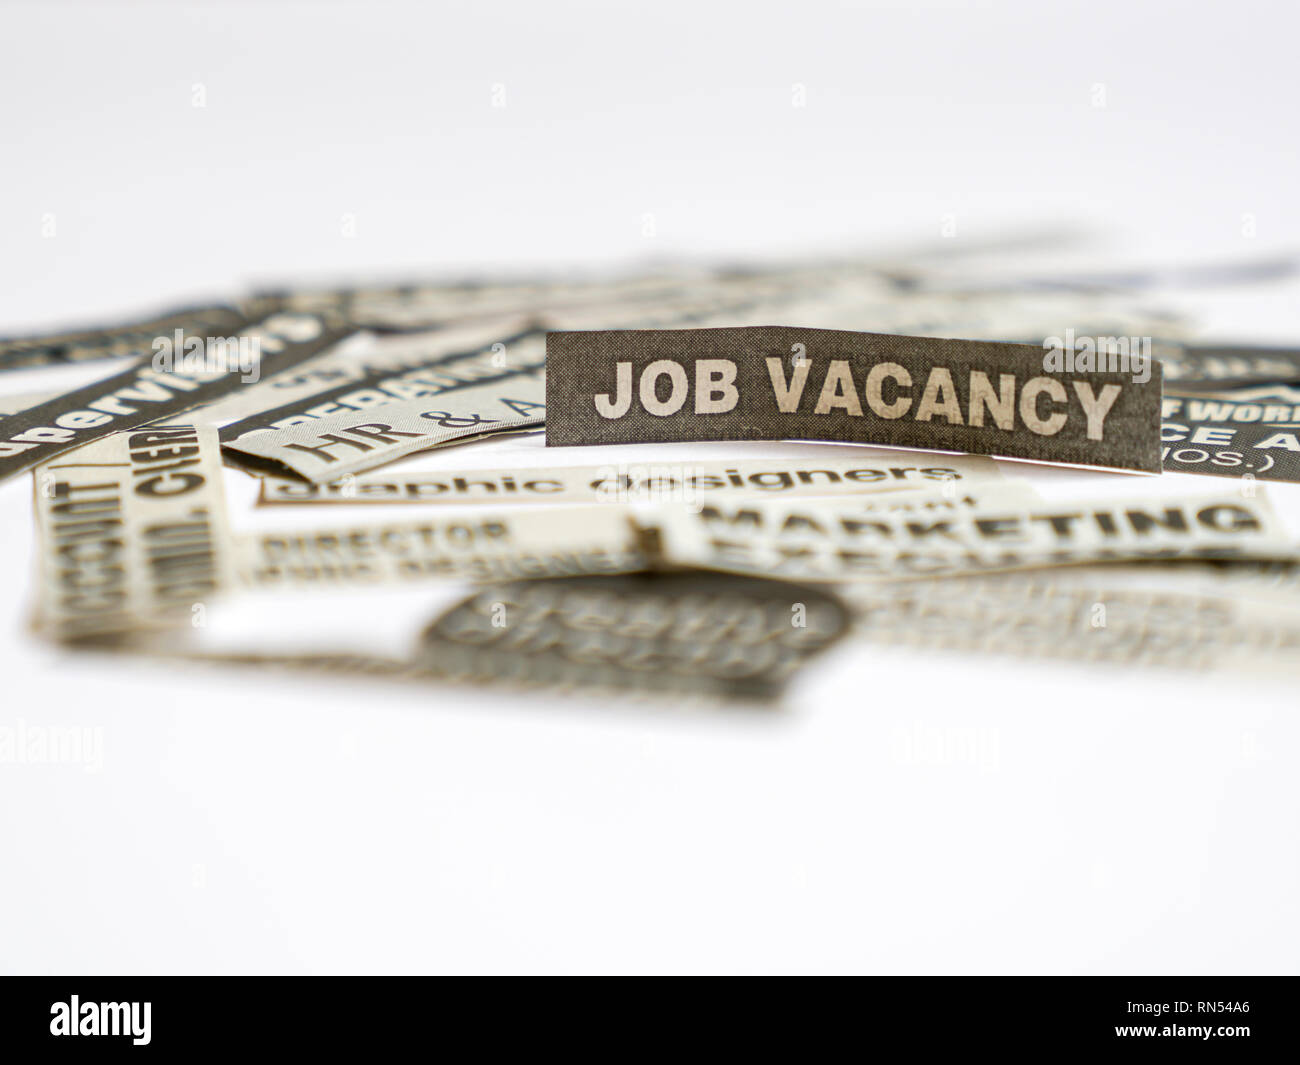 Jobs or careers concept: job titles or occupations cut off from newspaper and focus on Job Vacancy - Stock Image